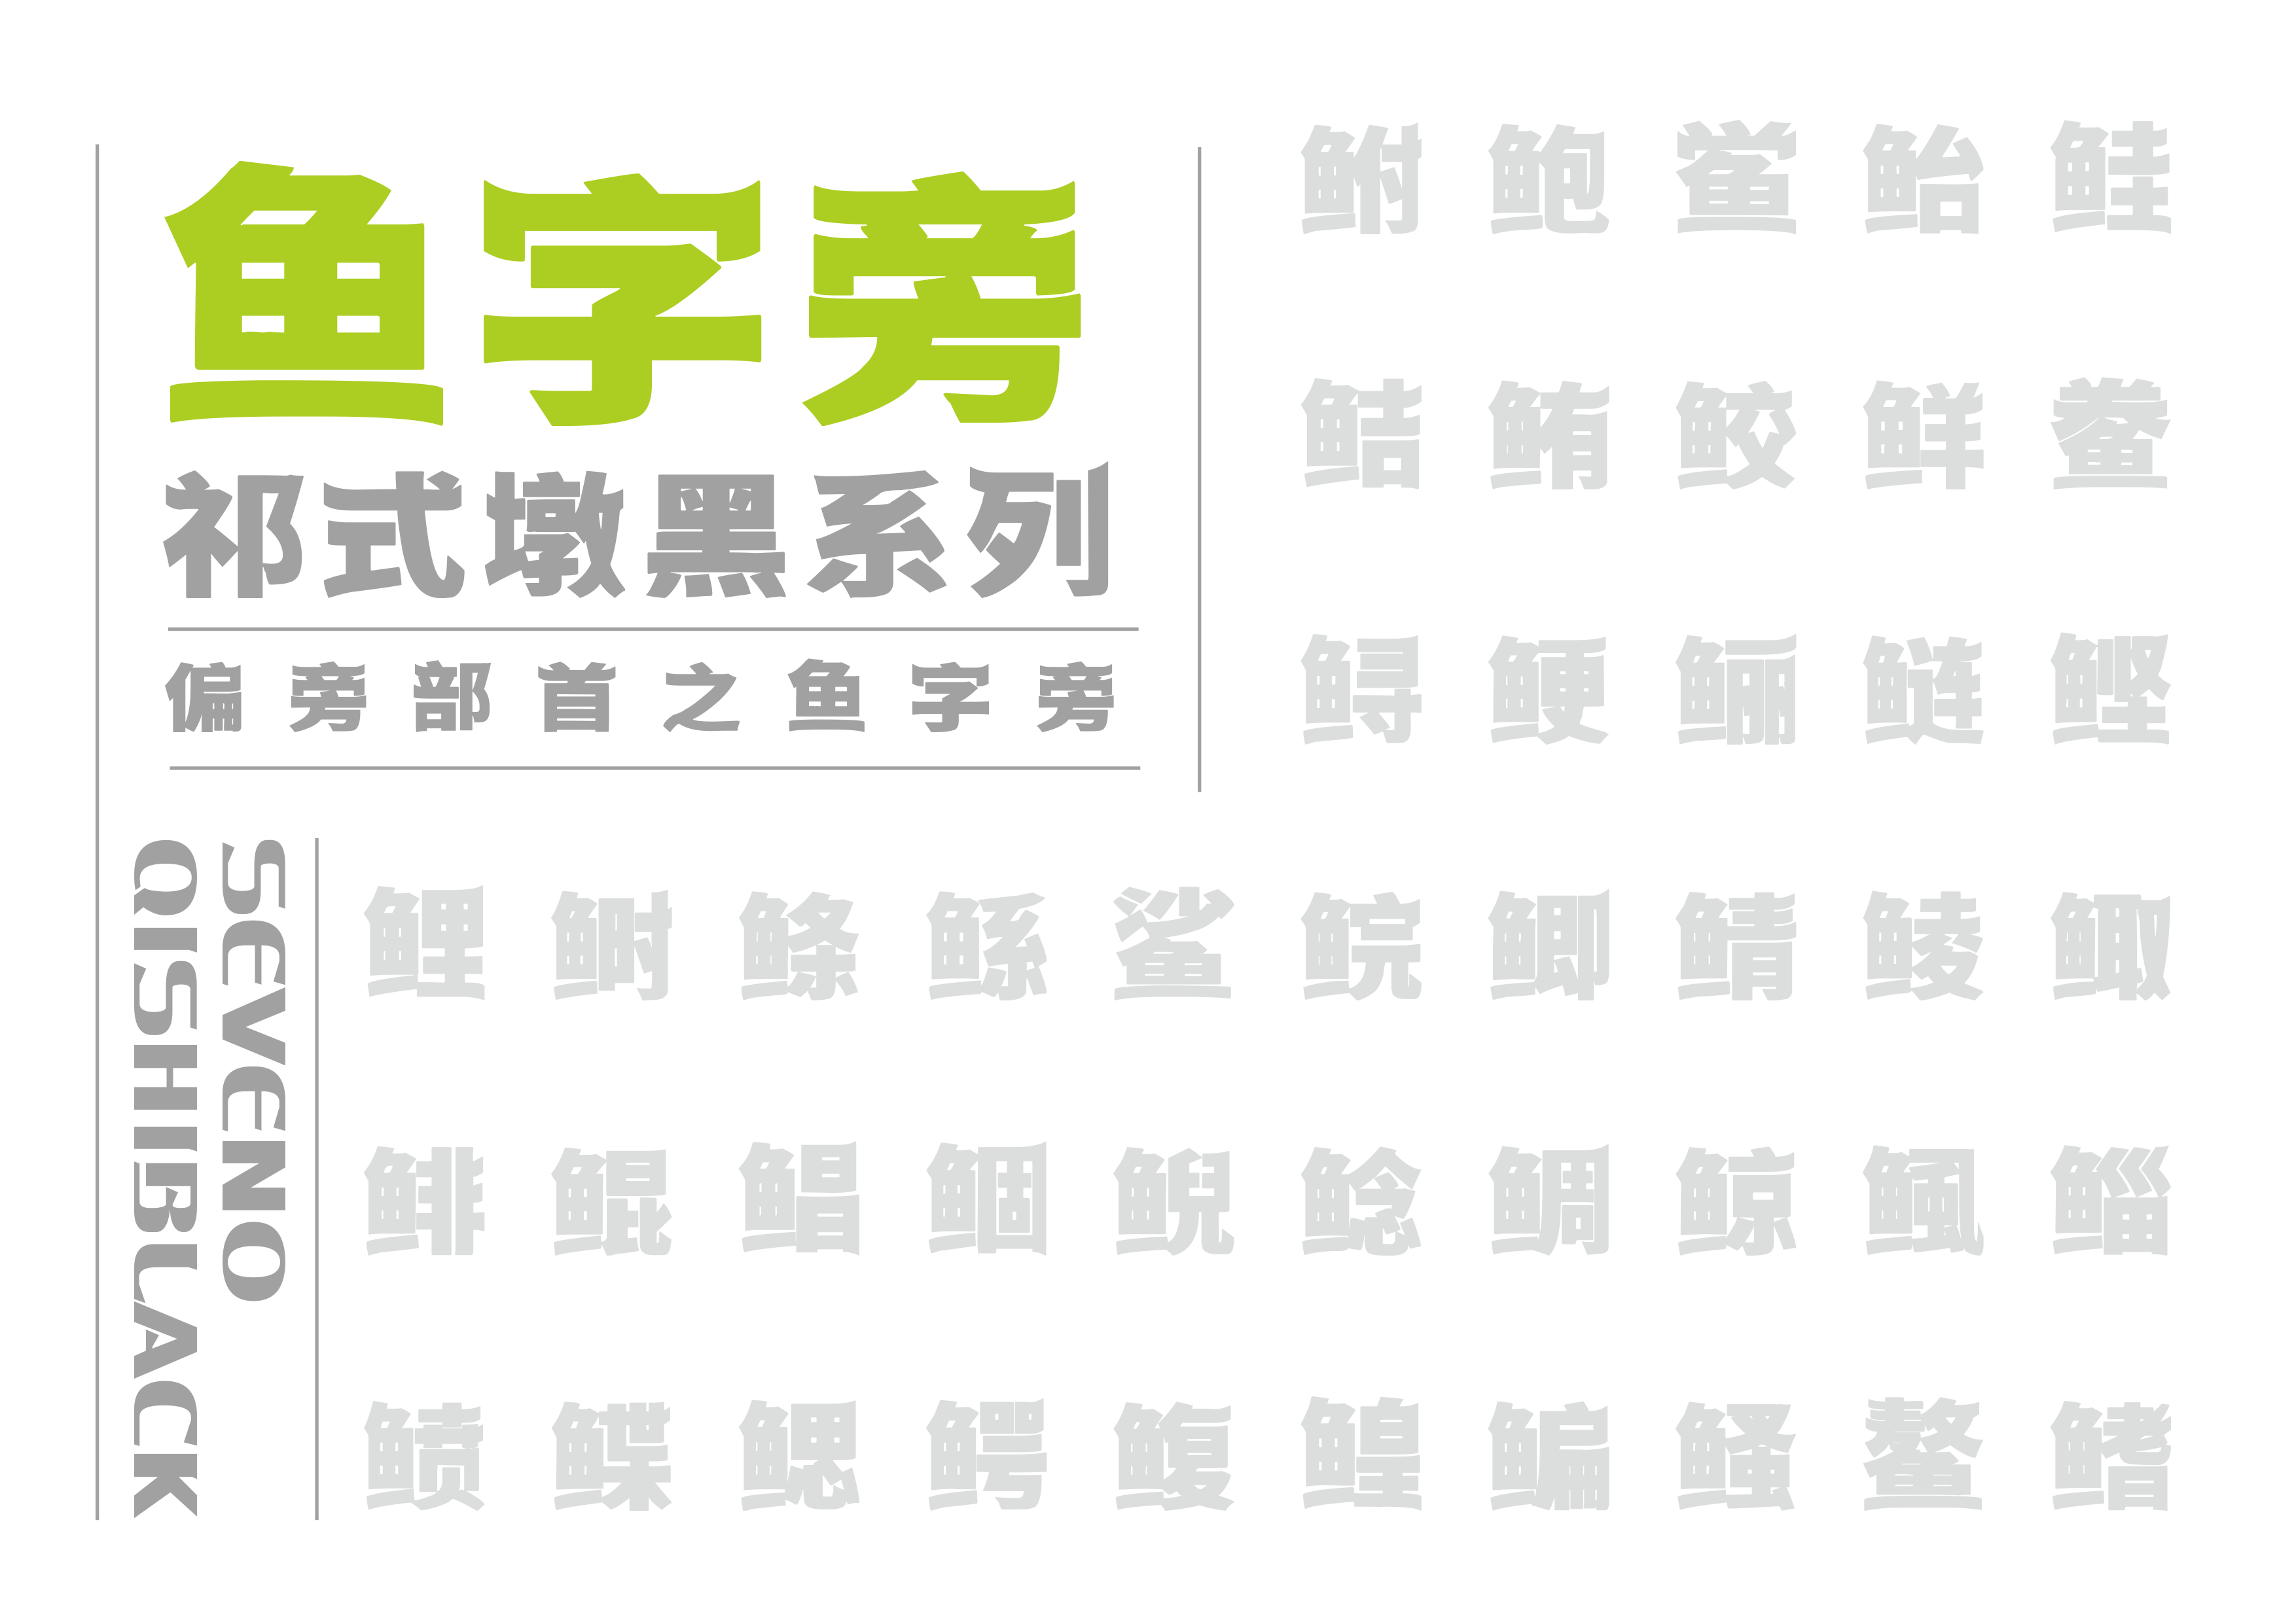 91P Collection of the latest Chinese font design schemes in 2021 #.58